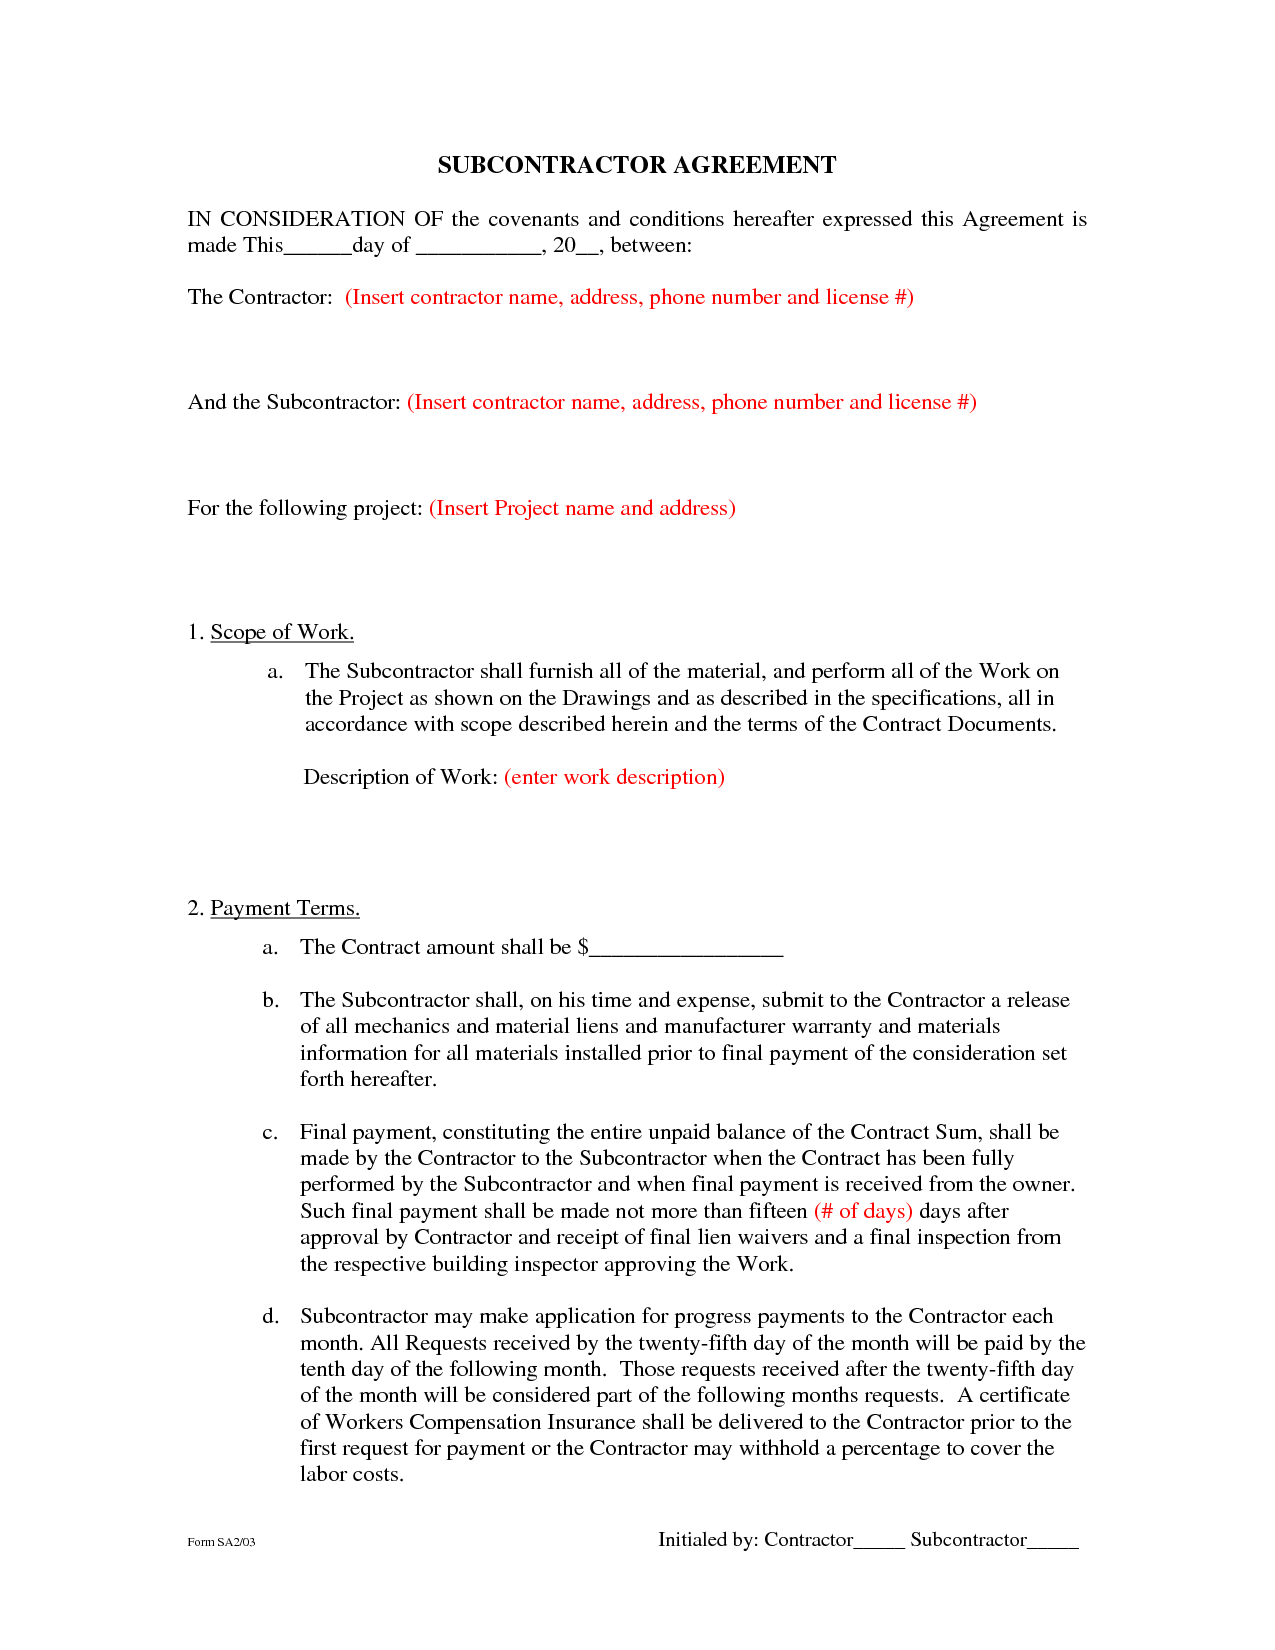 Subcontractor Agreement Forms by BeunaventuraLongjas ...